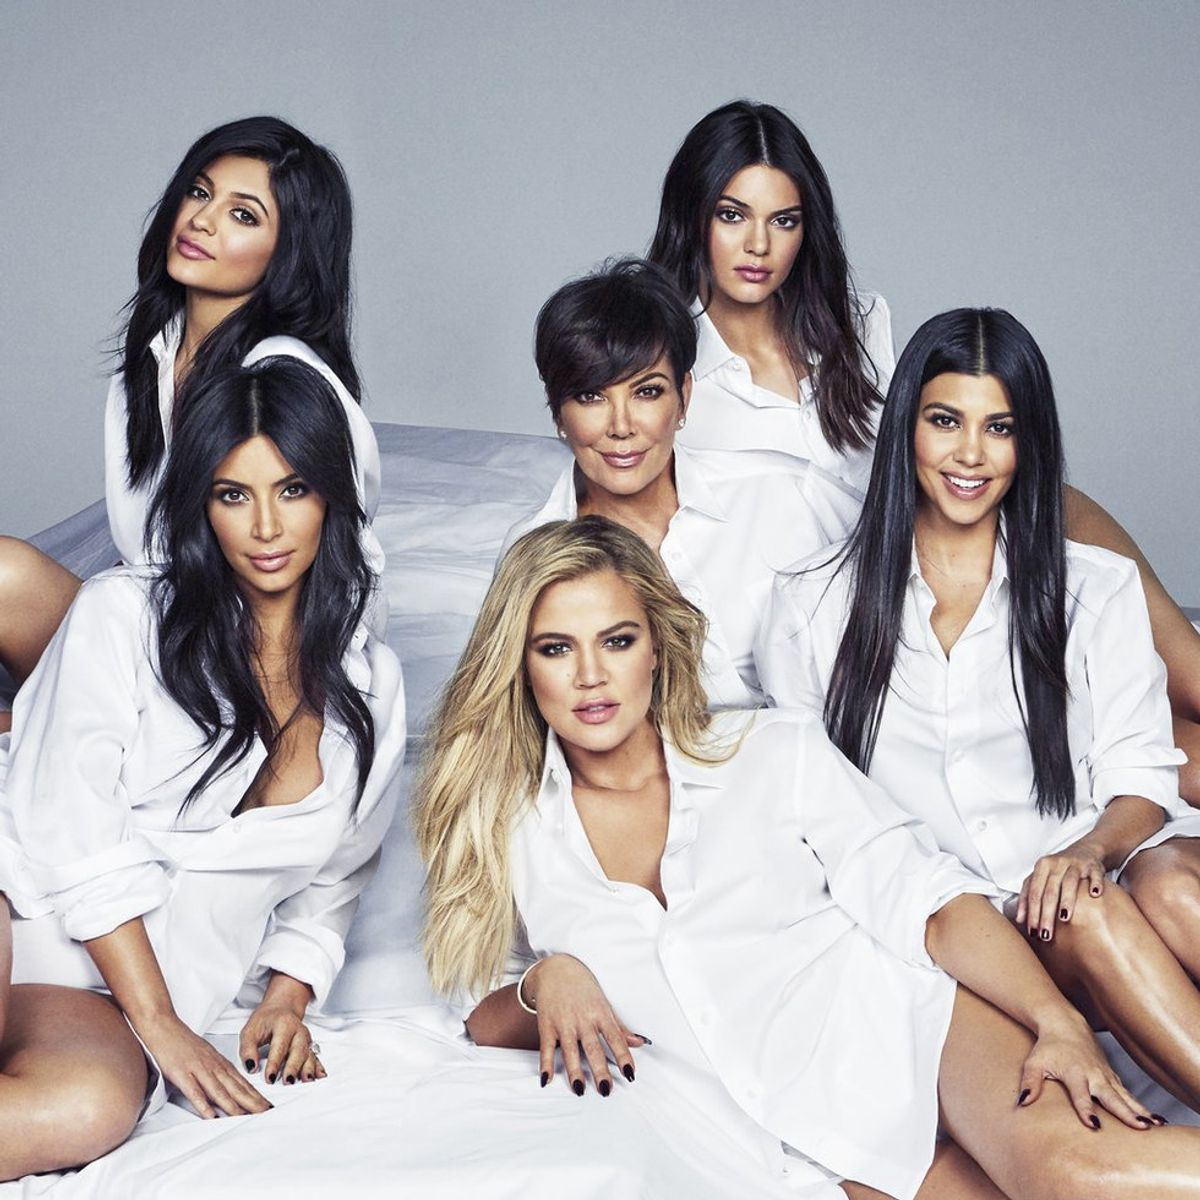 Why I Stopped Watching The Kardashians